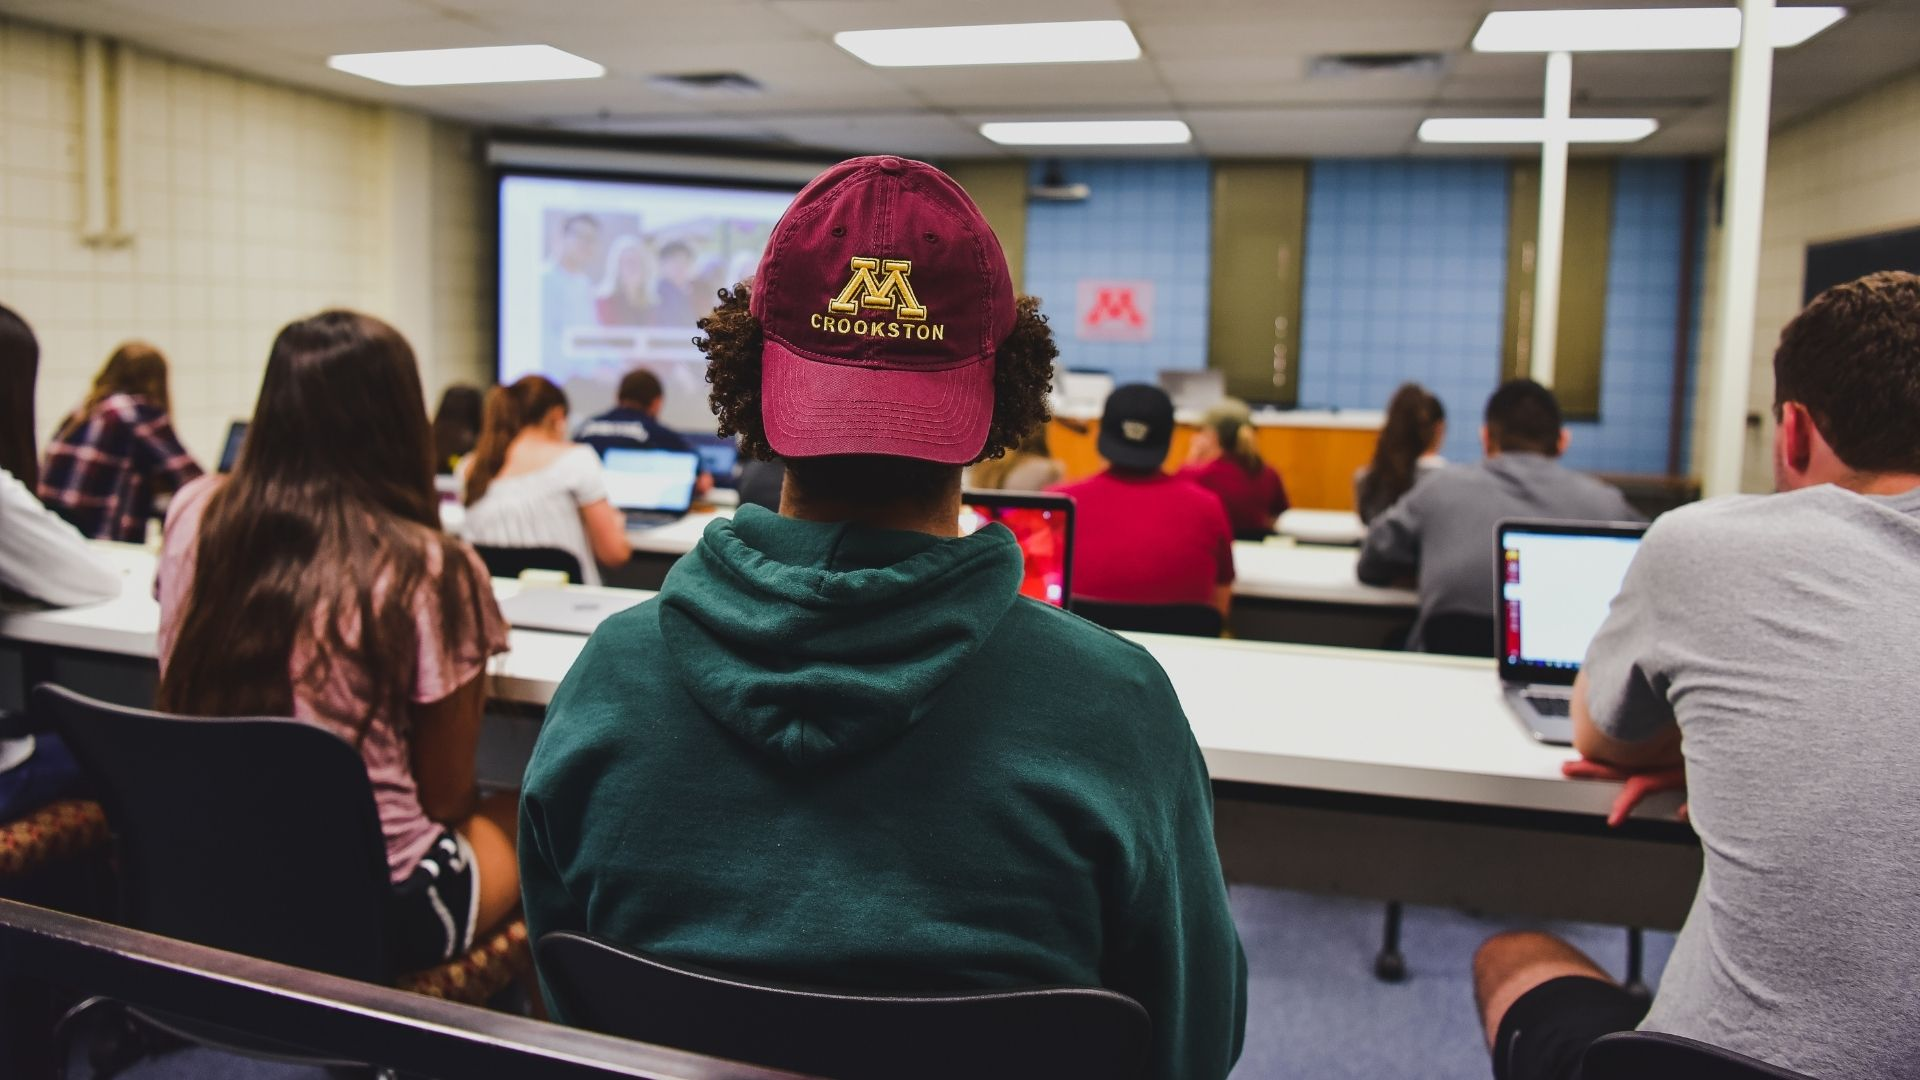 student in class with Crookston Hat on